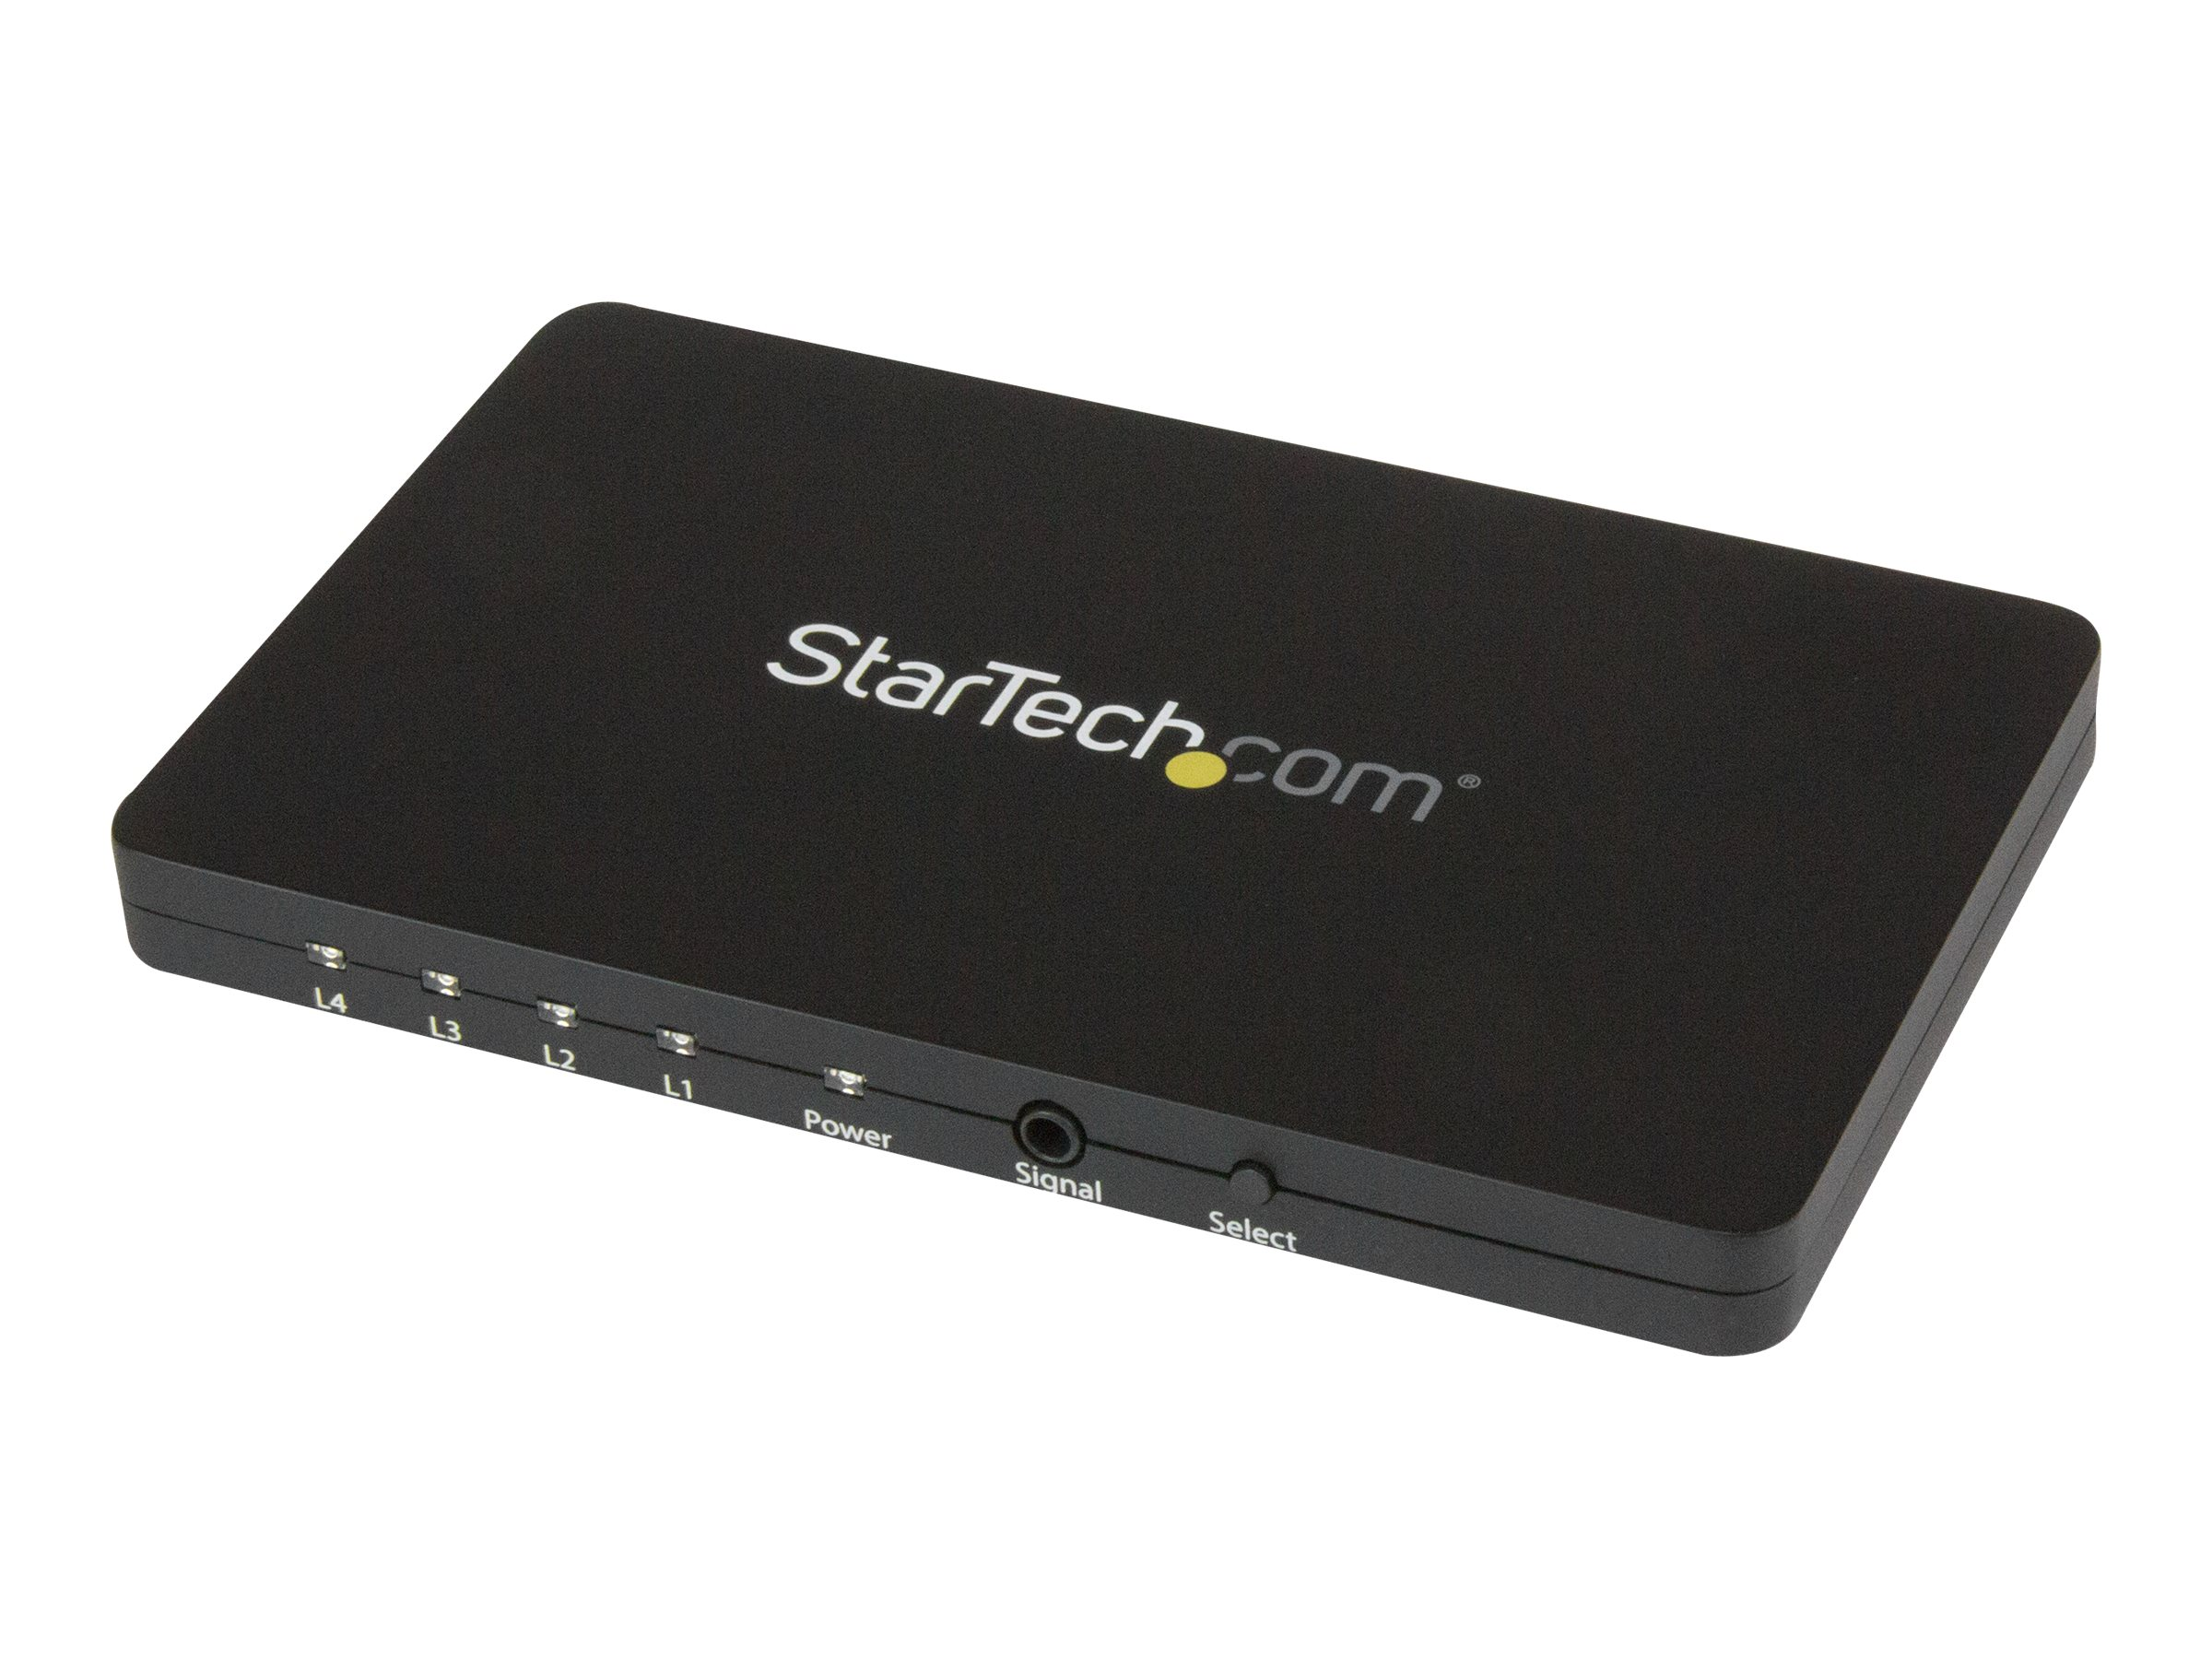 StarTech.com 4 Port HDMI Switch - 4K 30Hz - Aluminum Housing and MHL Support - 4x1 HDMI Switcher Box - 4K HDMI Selector…